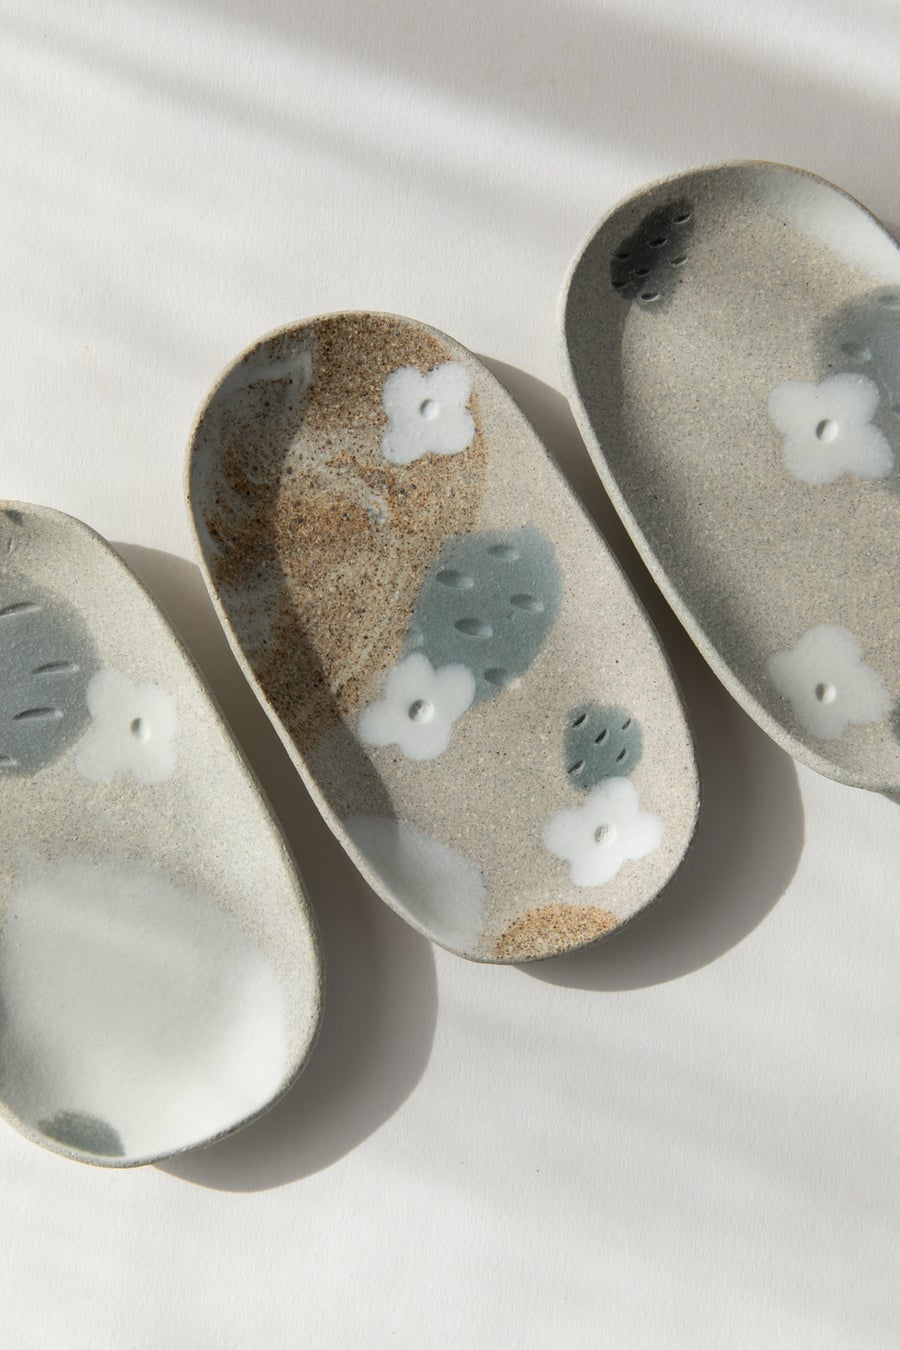 Image of Small Oval Jewelry Dish - Granite Slate with White Flowers